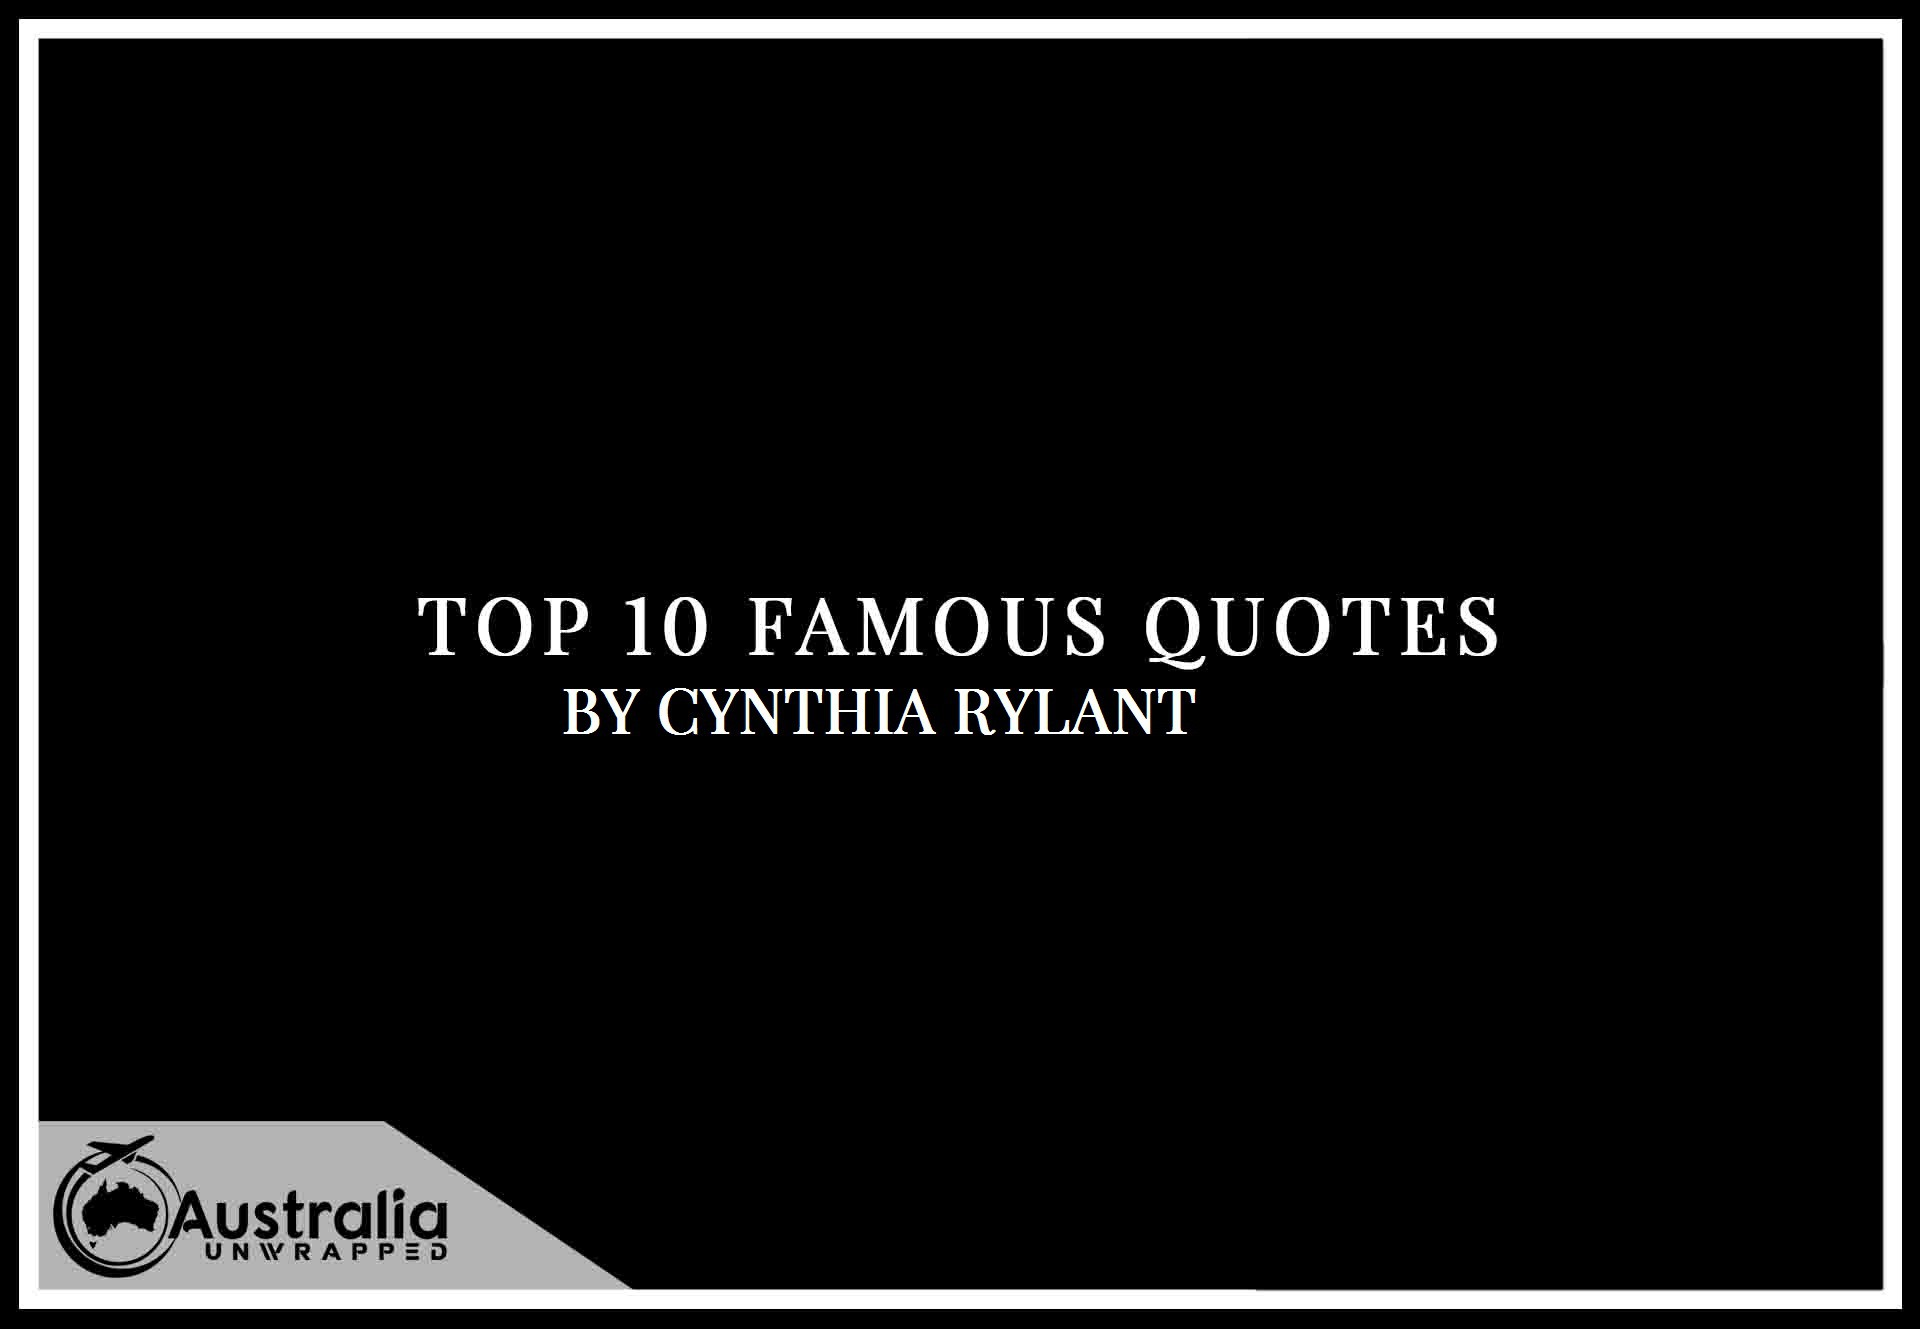 Cynthia Rylant's Top 10 Popular and Famous Quotes